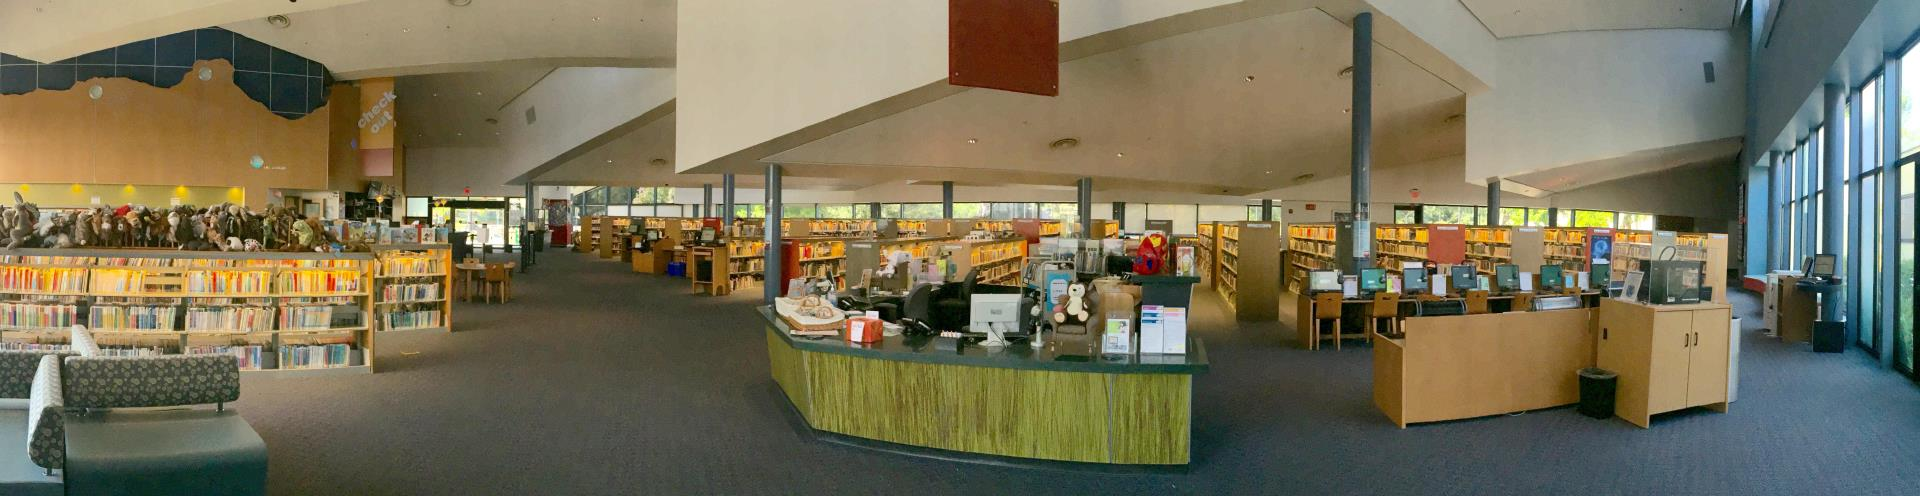 ChildrenLibraryPANO